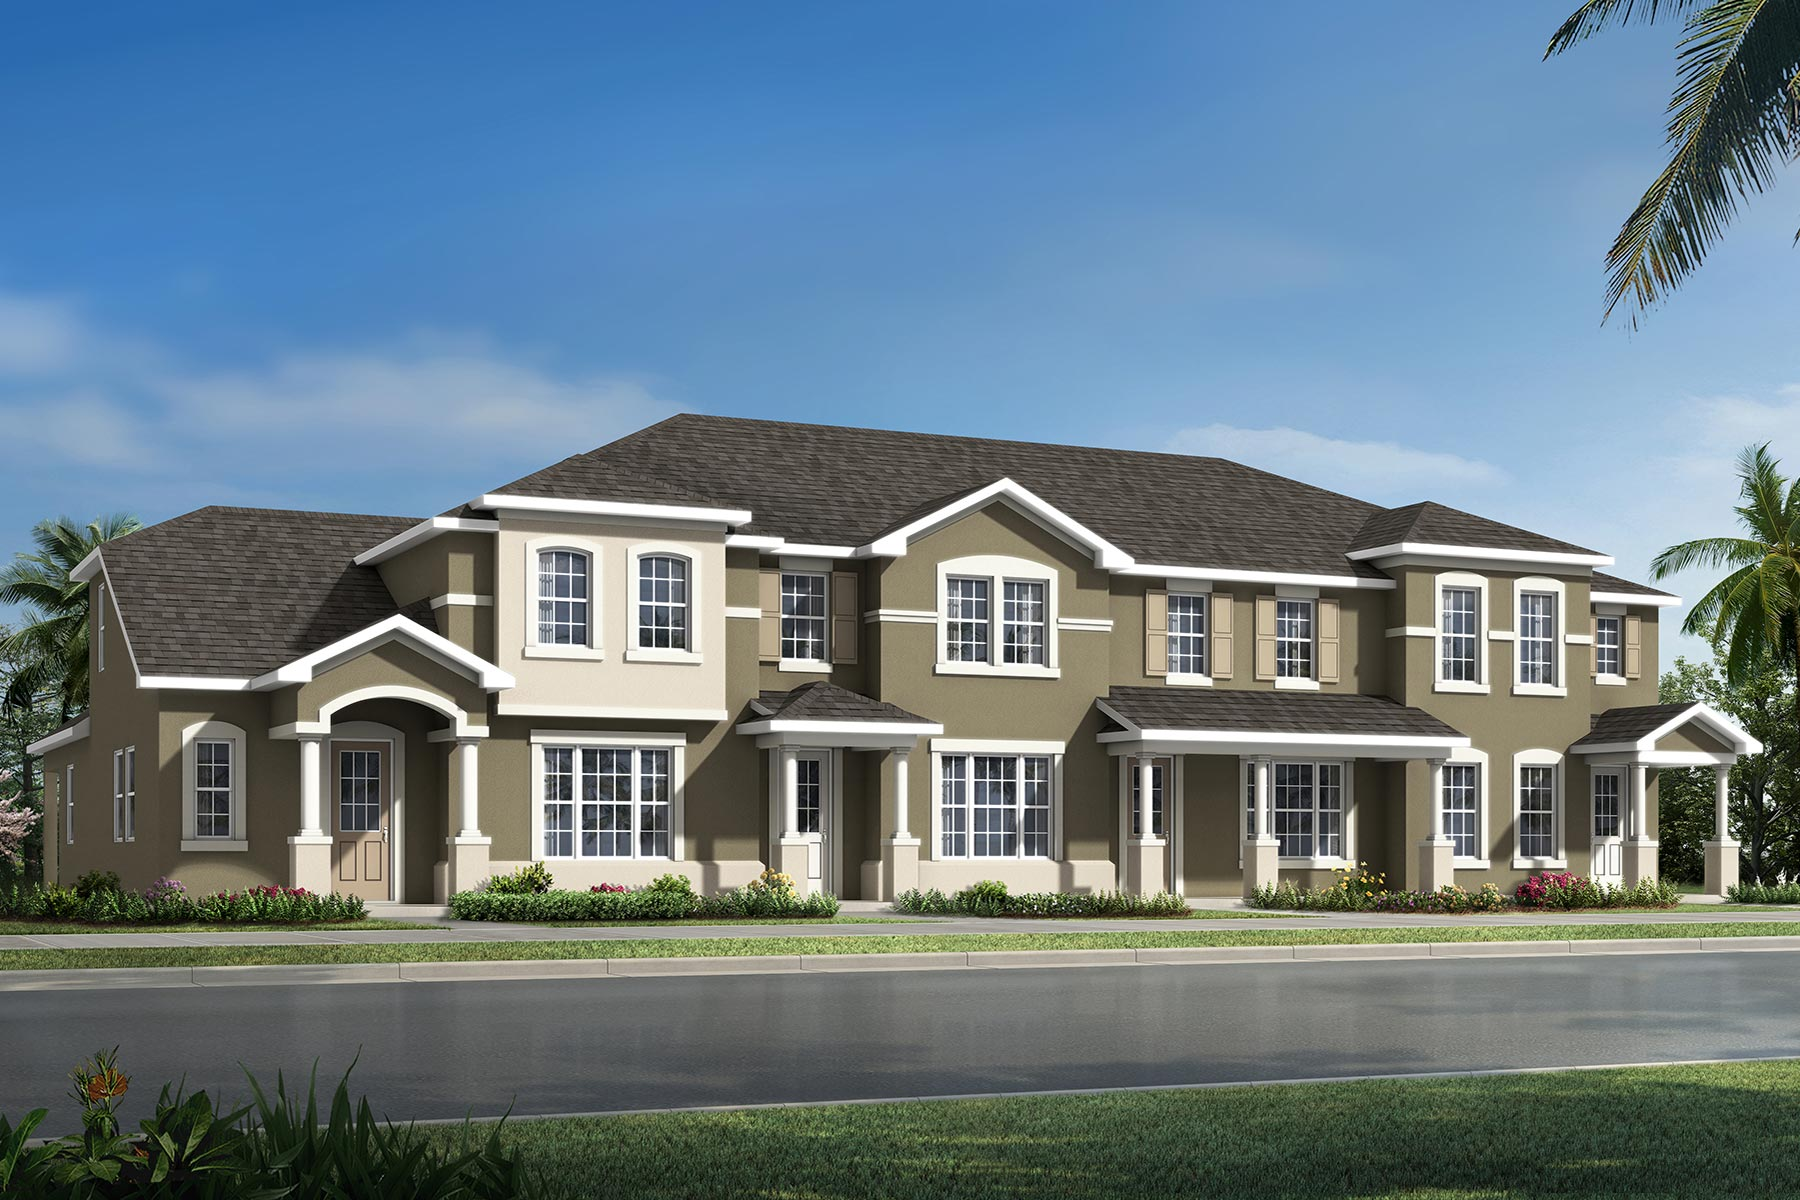 Anabel III Plan TownHomes at Randal Walk in Orlando Florida by Mattamy Homes